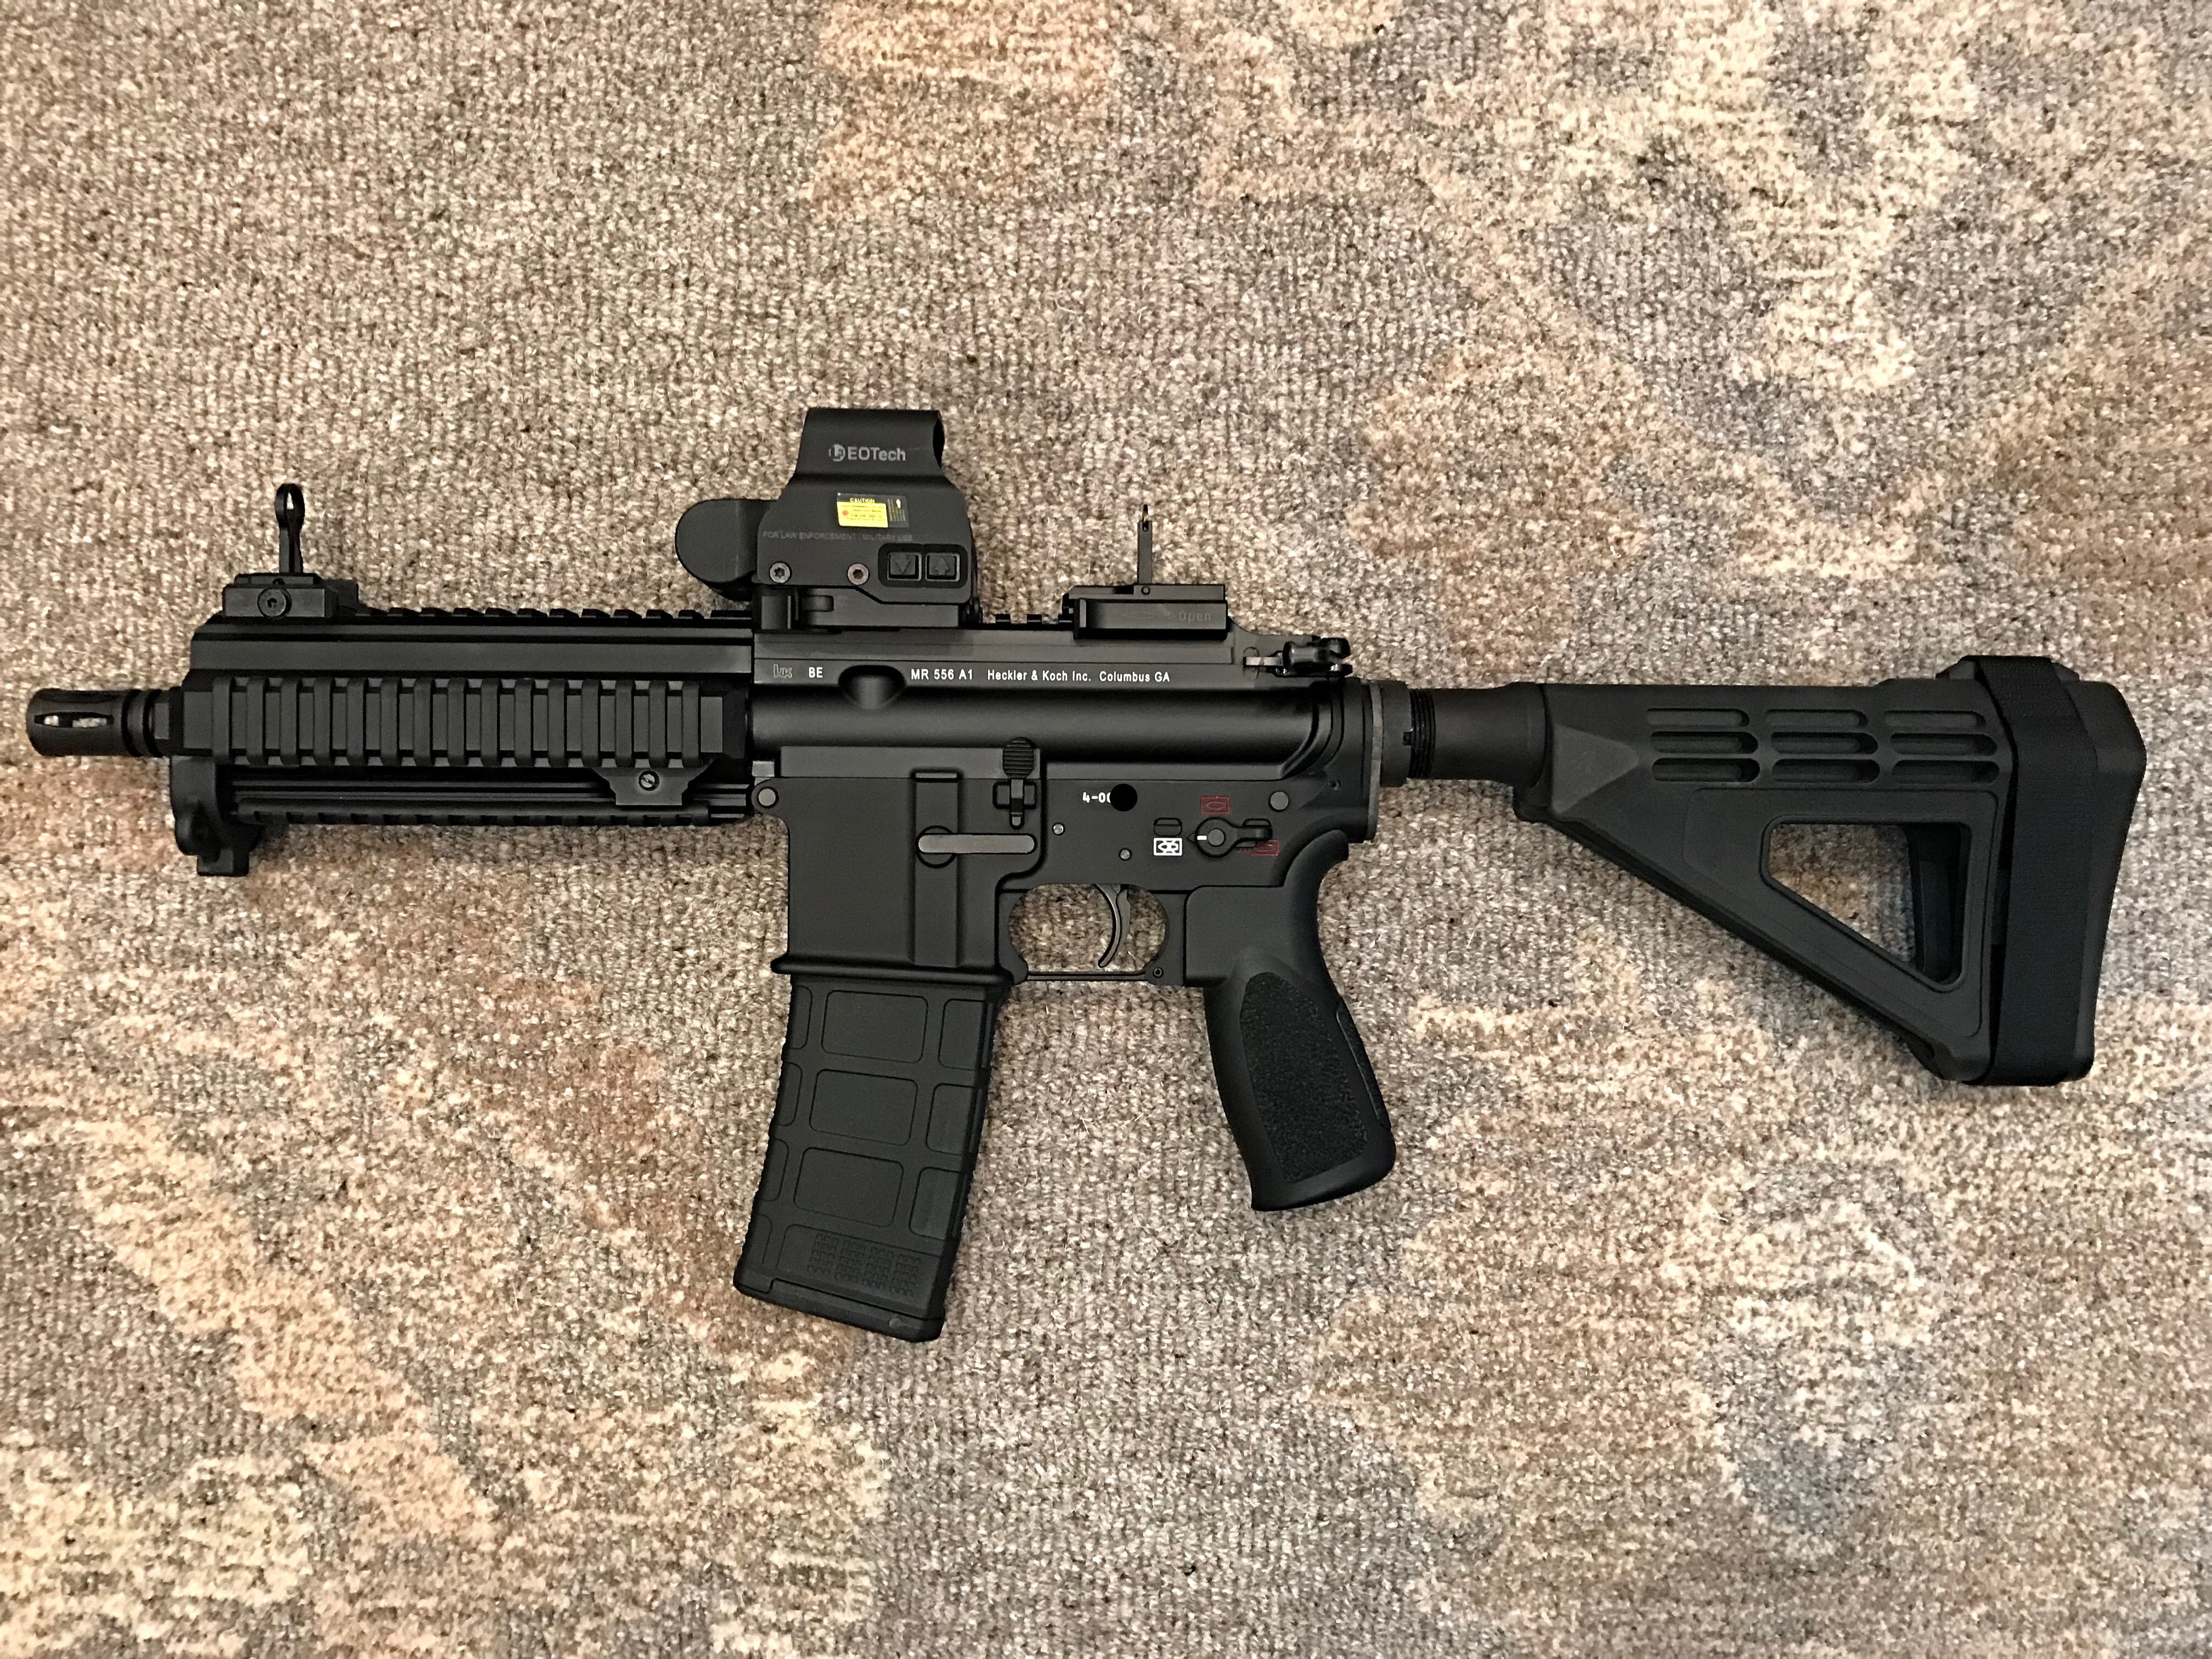 Brownells 416 kits and lowers on sale 11/12 - Page 28